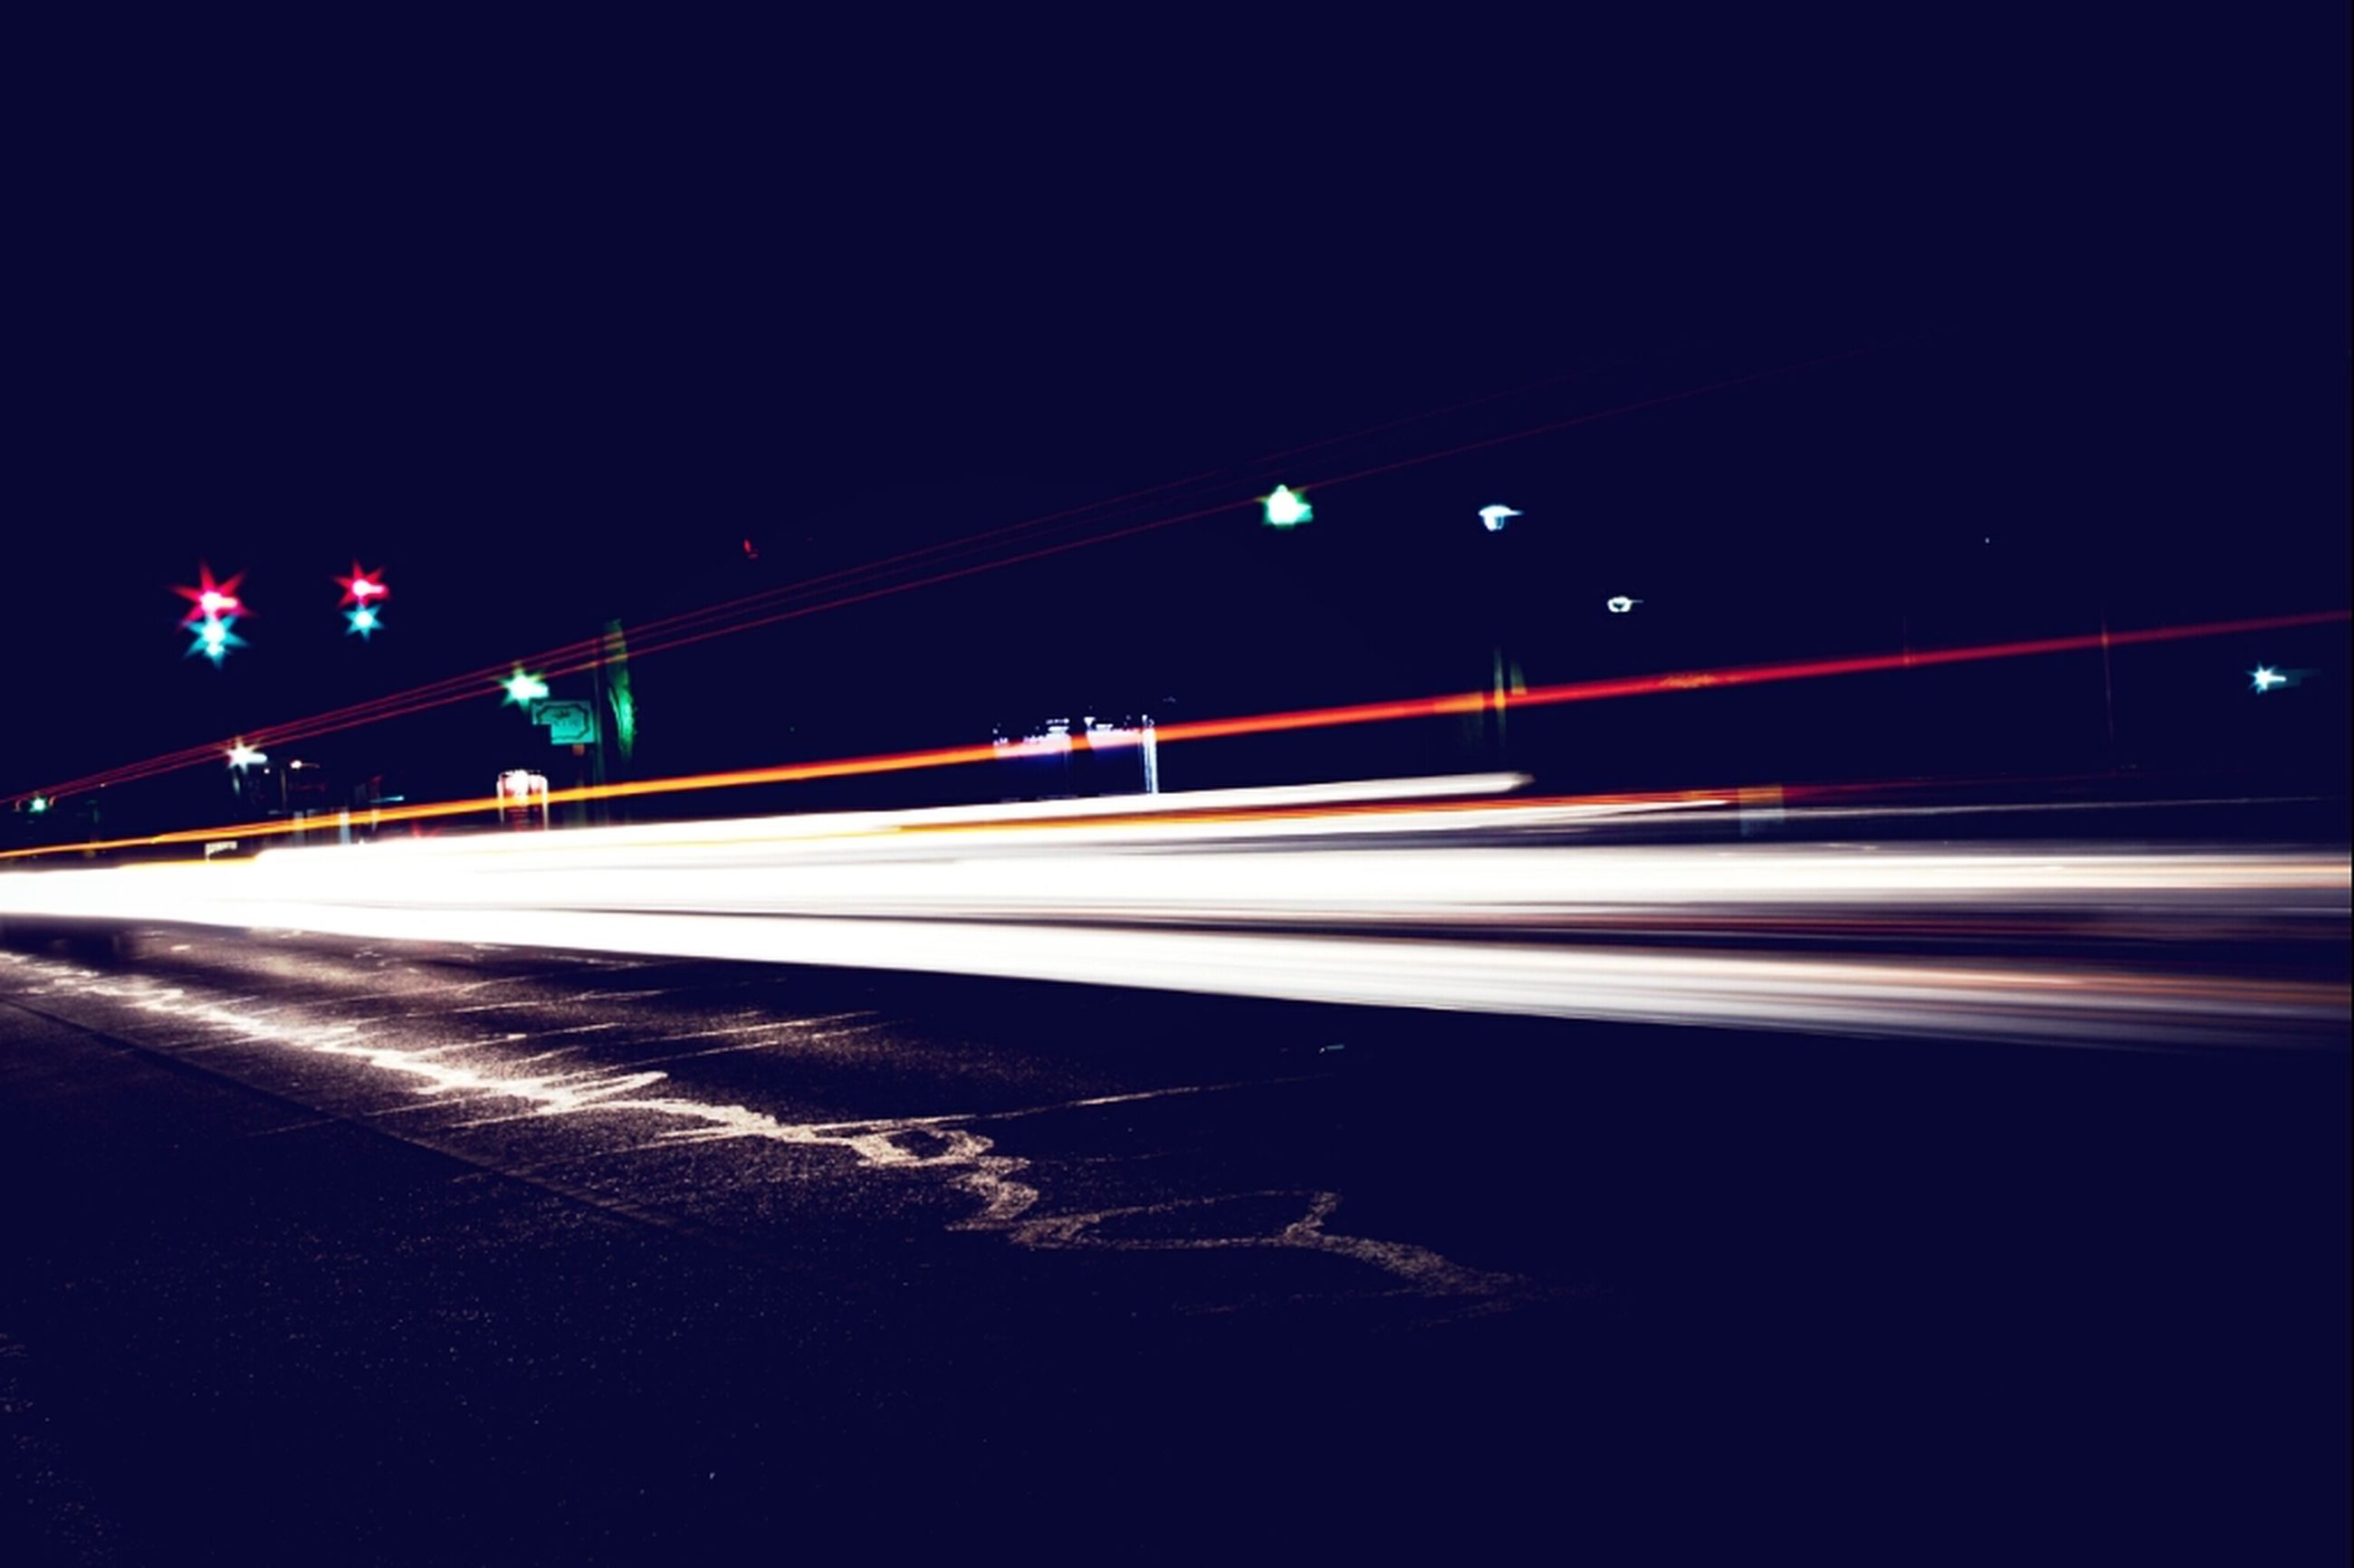 night, illuminated, long exposure, light trail, transportation, speed, motion, street light, road, street, blurred motion, lighting equipment, copy space, clear sky, road marking, light - natural phenomenon, on the move, car, outdoors, the way forward